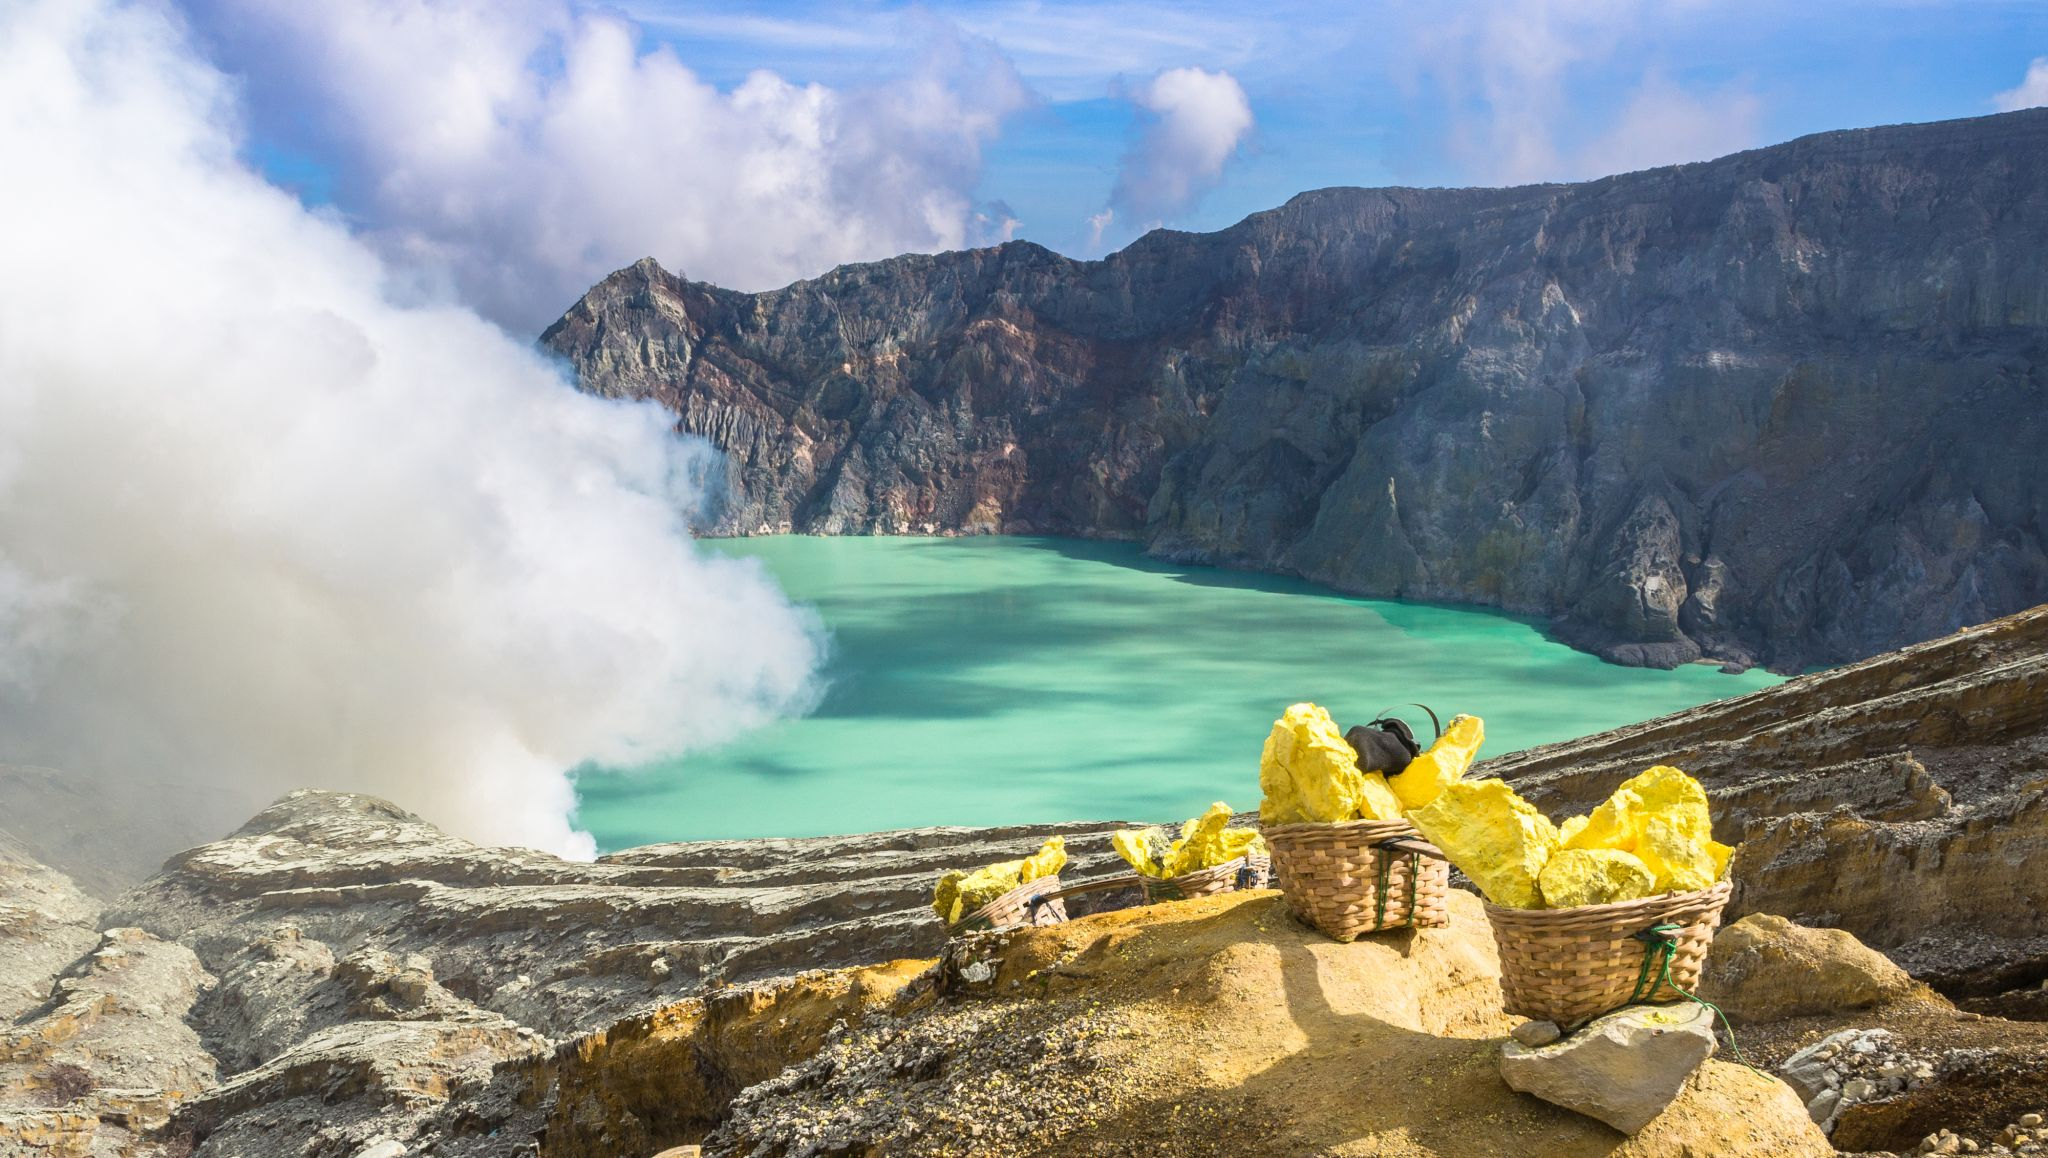 On the crater rim of Mount Ijen, Indonesia